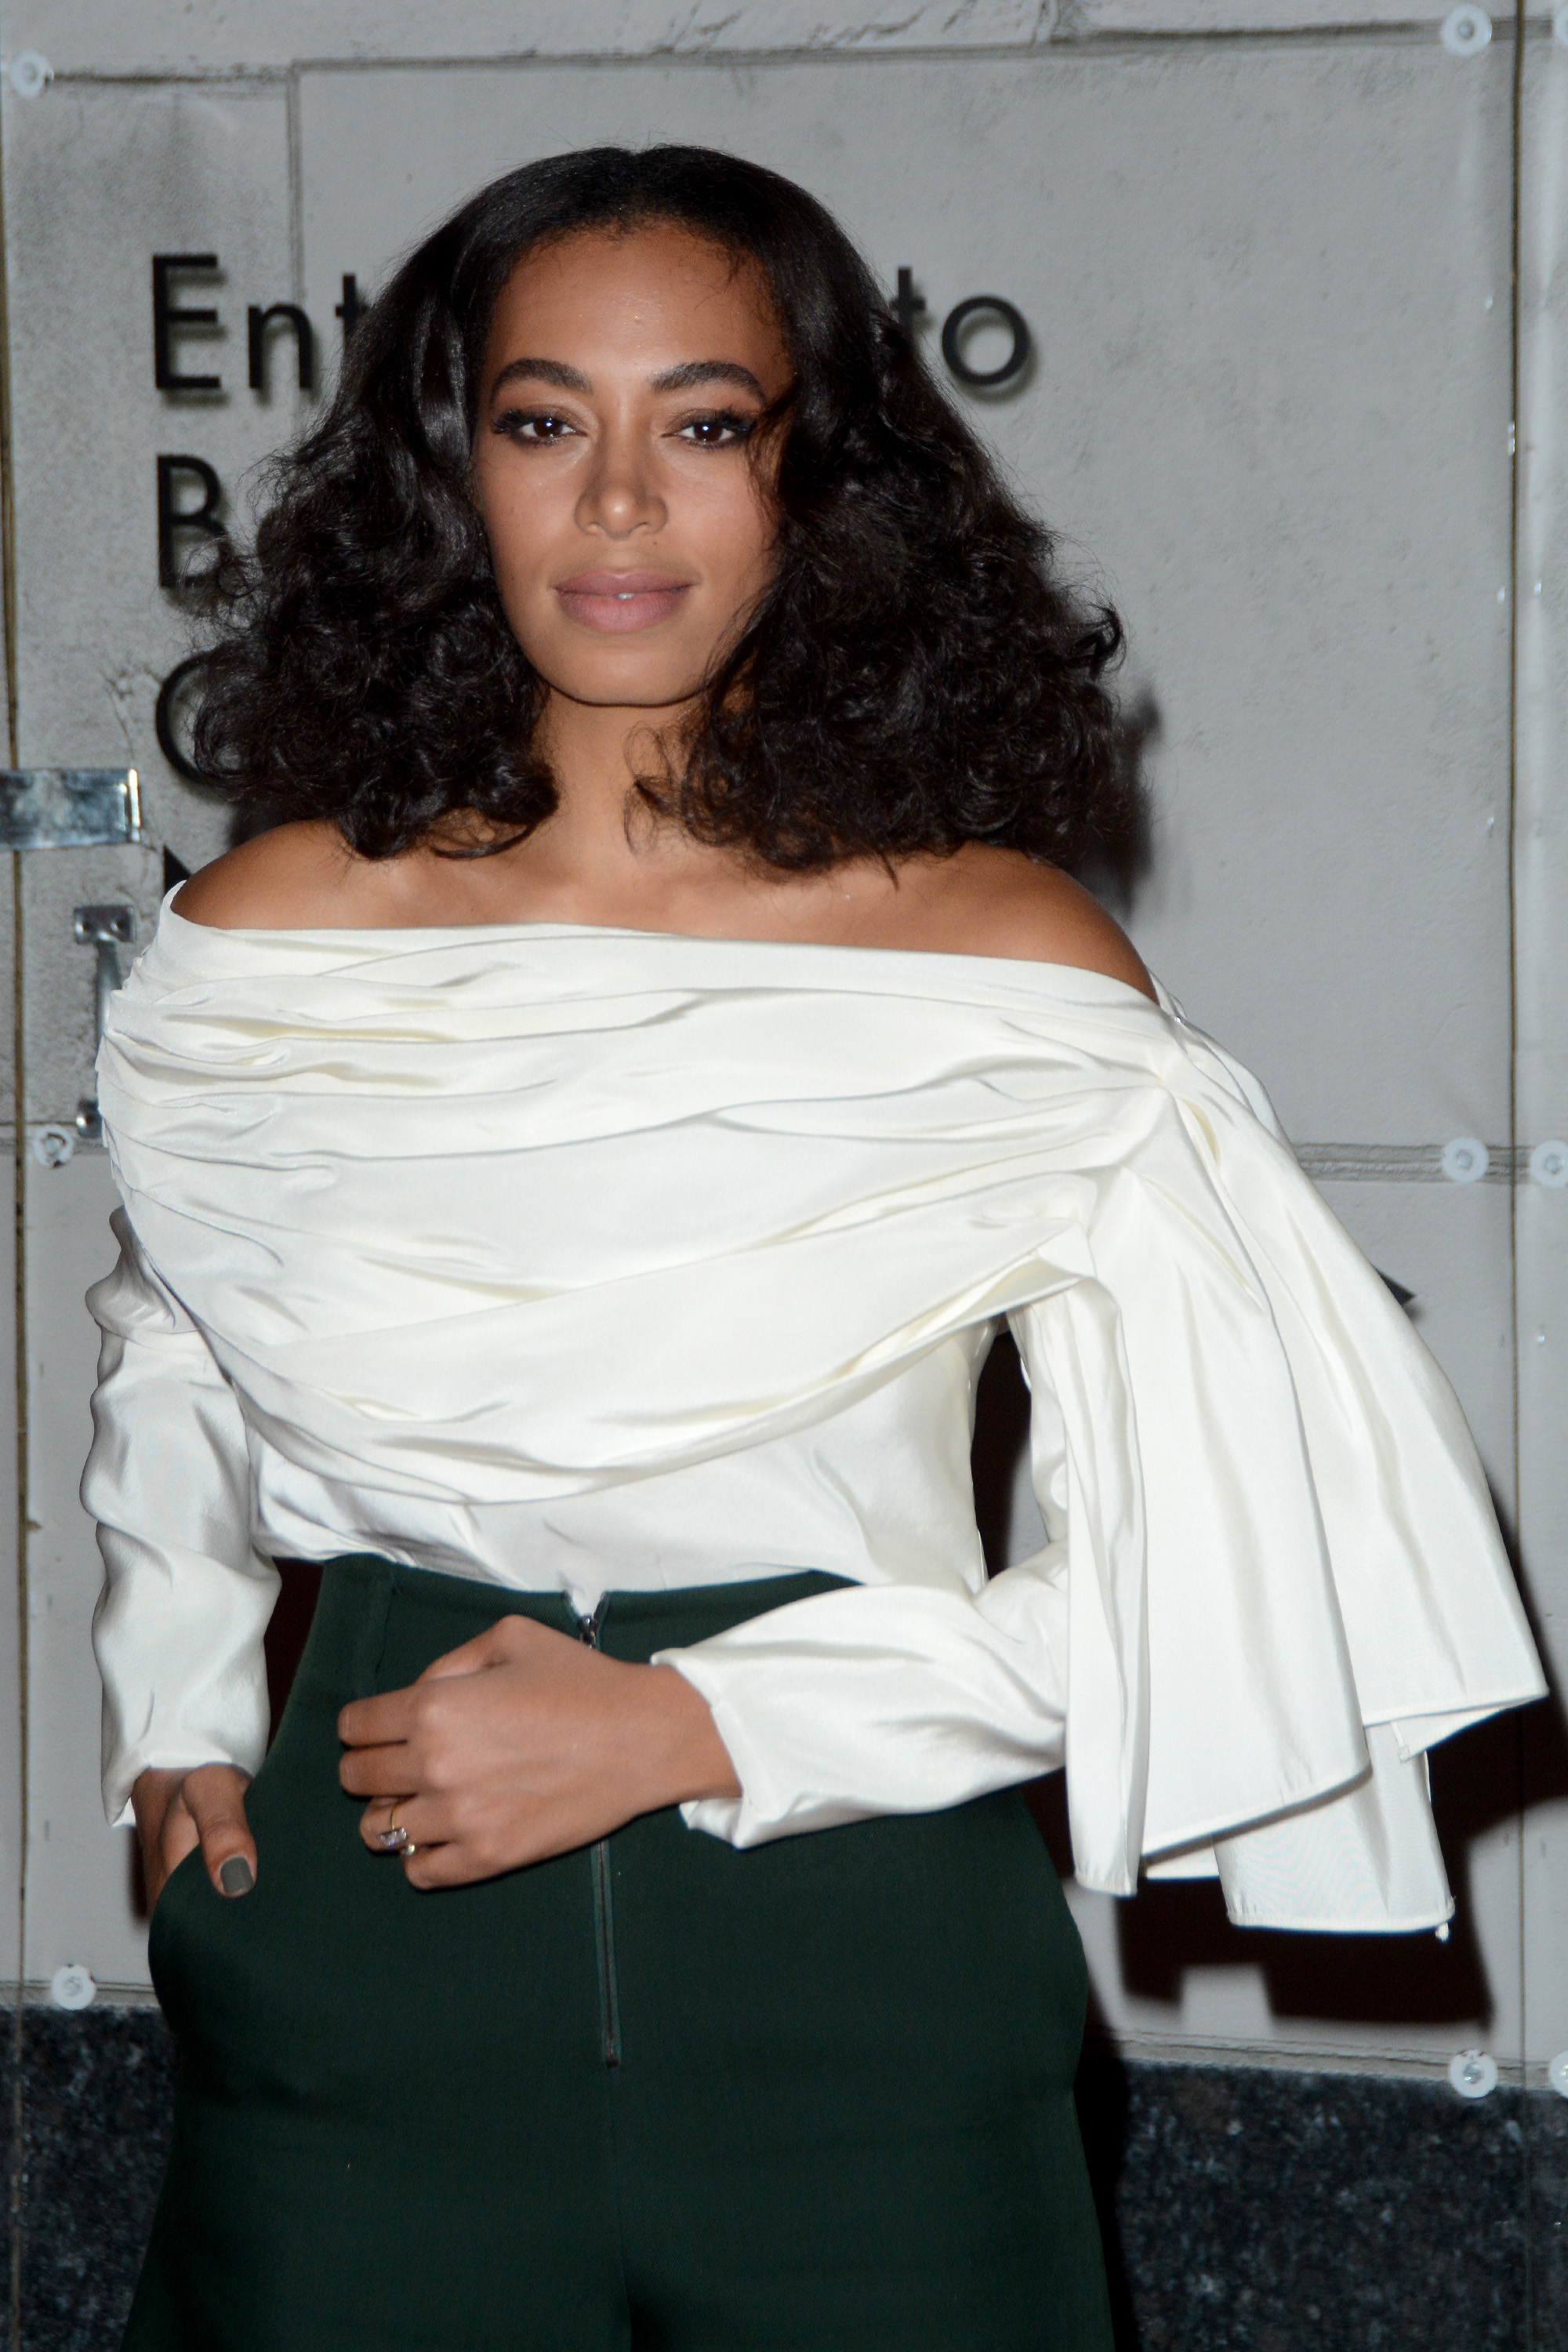 Solange Knowles Arrives At The Gemfields Jewelry Salon Opening Bergdorf Goodman In New York On: Solange Knowles New Wedding Ring At Reisefeber.org